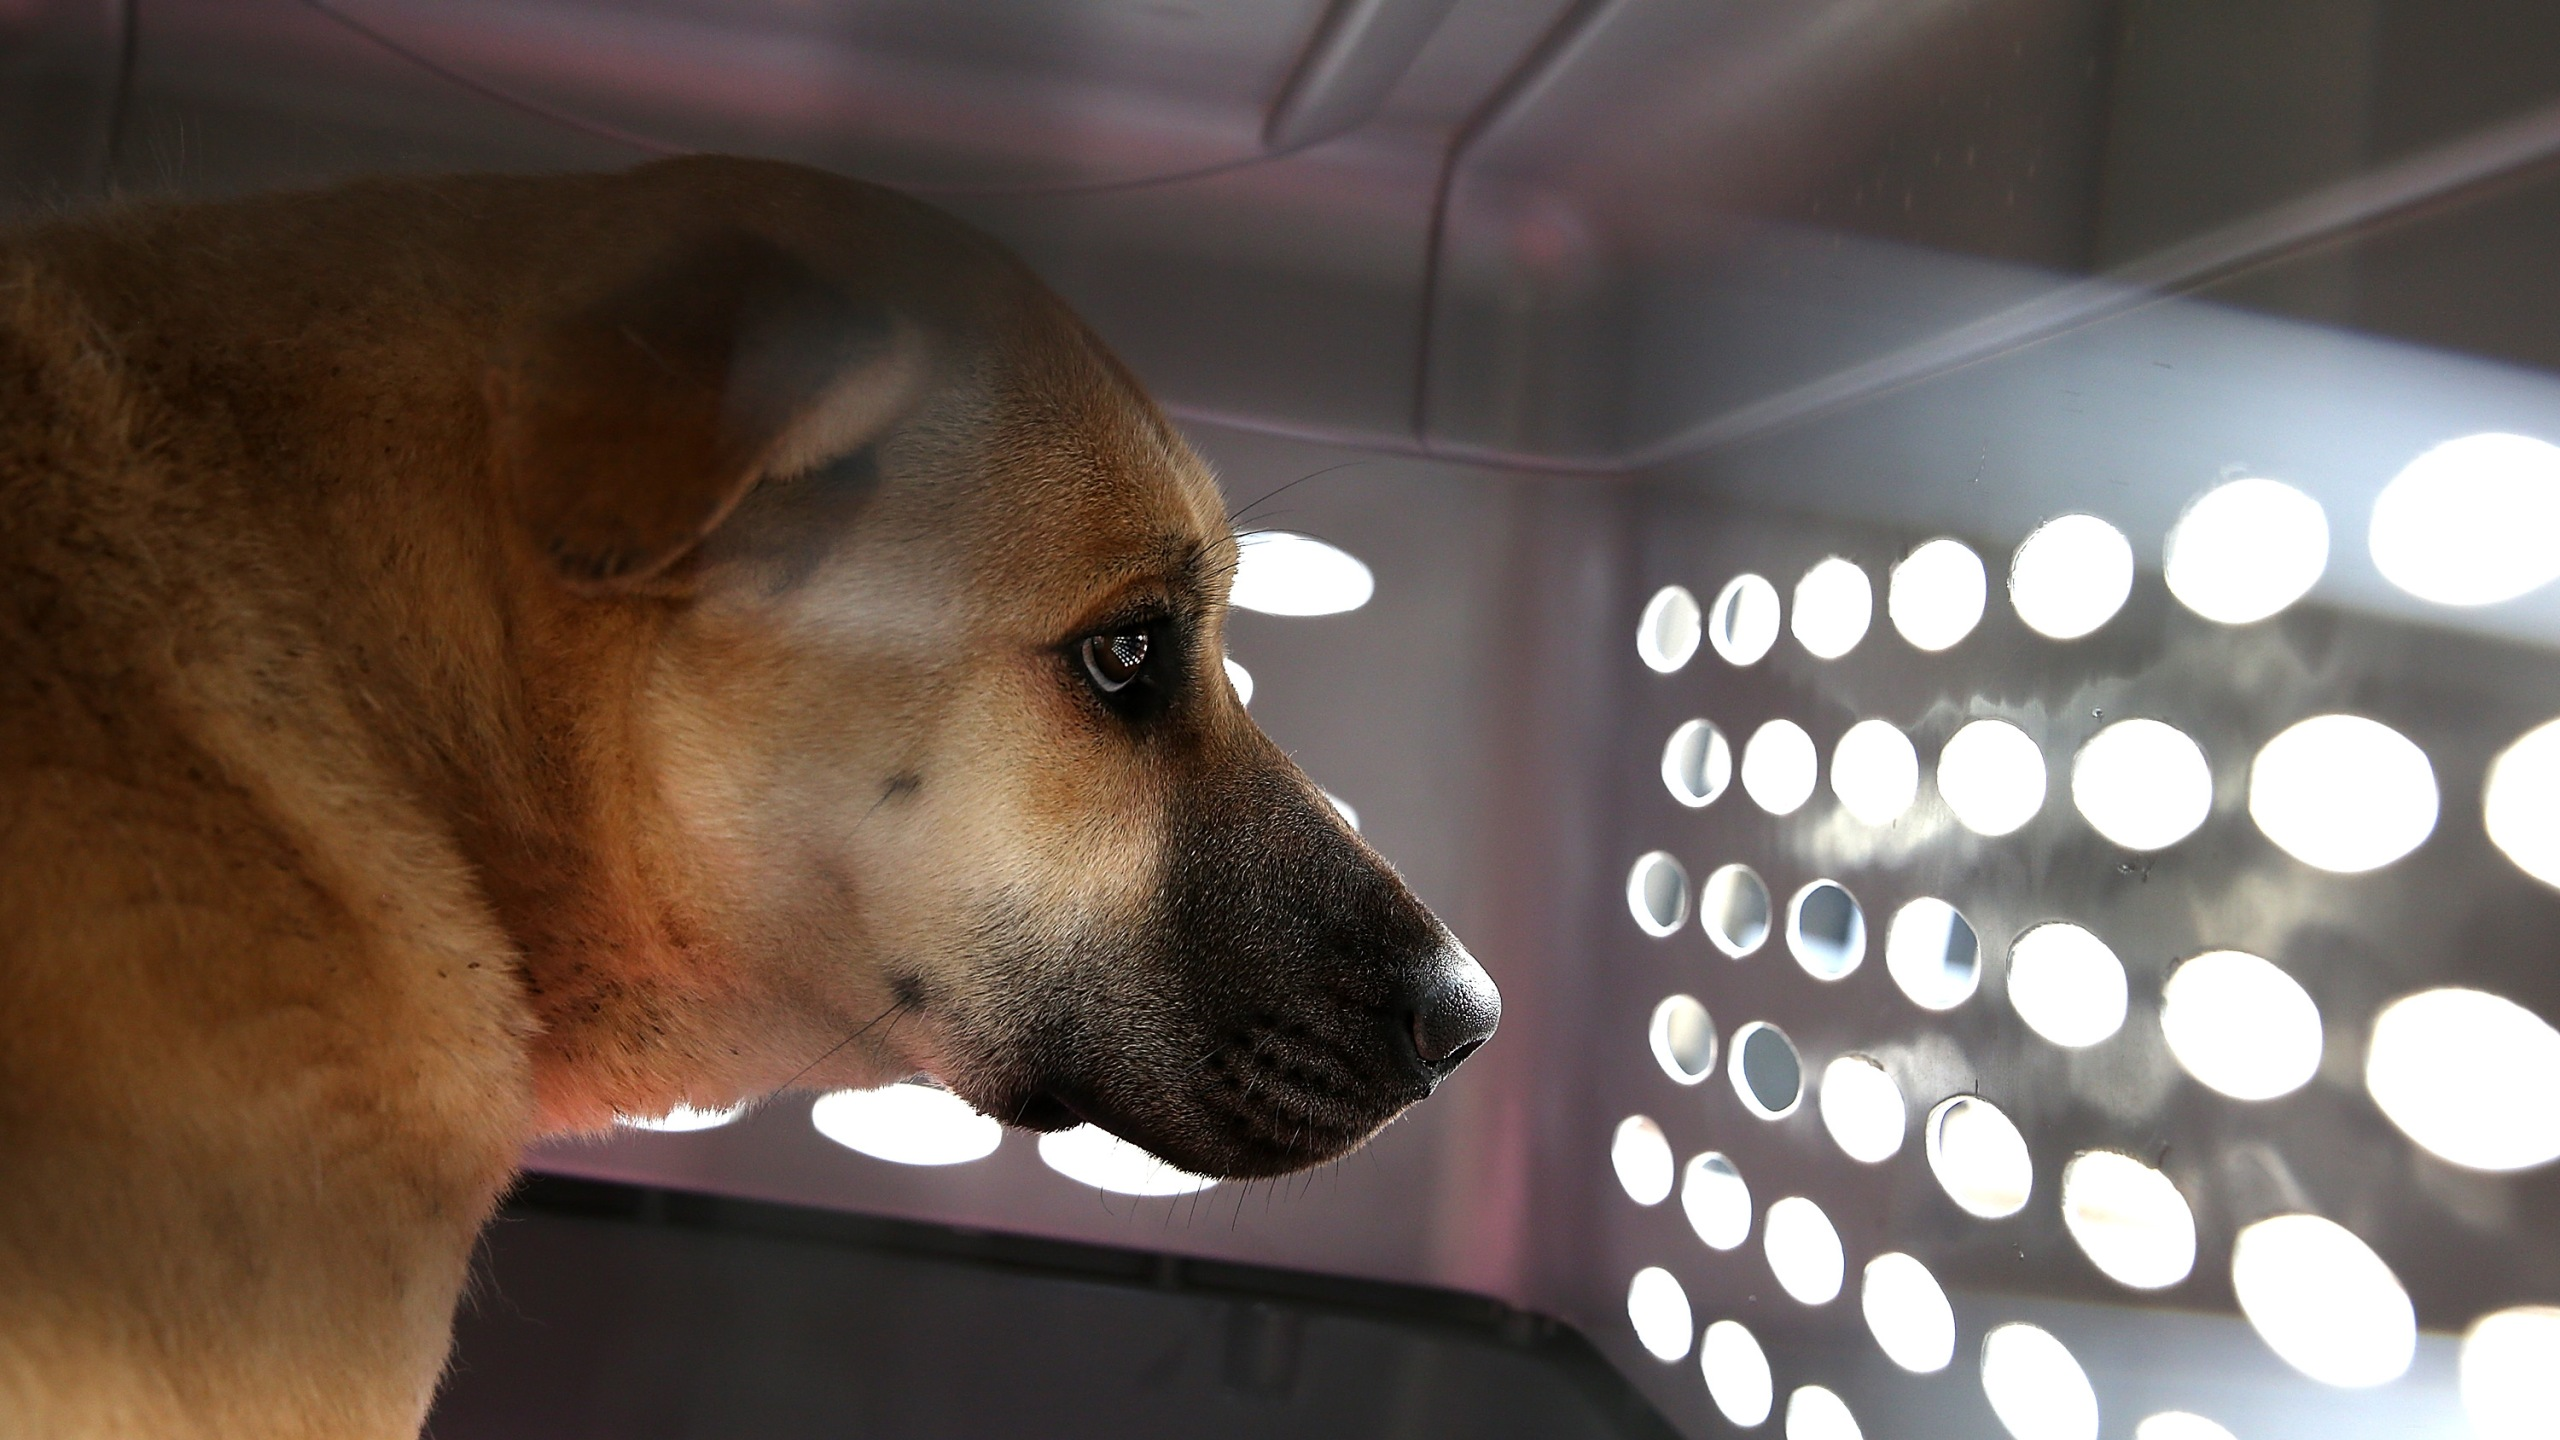 A dog rescued from a South Korean dog meat farm sits in a crate at the San Francisco the San Francisco Society for the Prevention of Cruelty (SPCA) shelter on March 20, 2015. (Credit: Justin Sullivan / Getty Images)